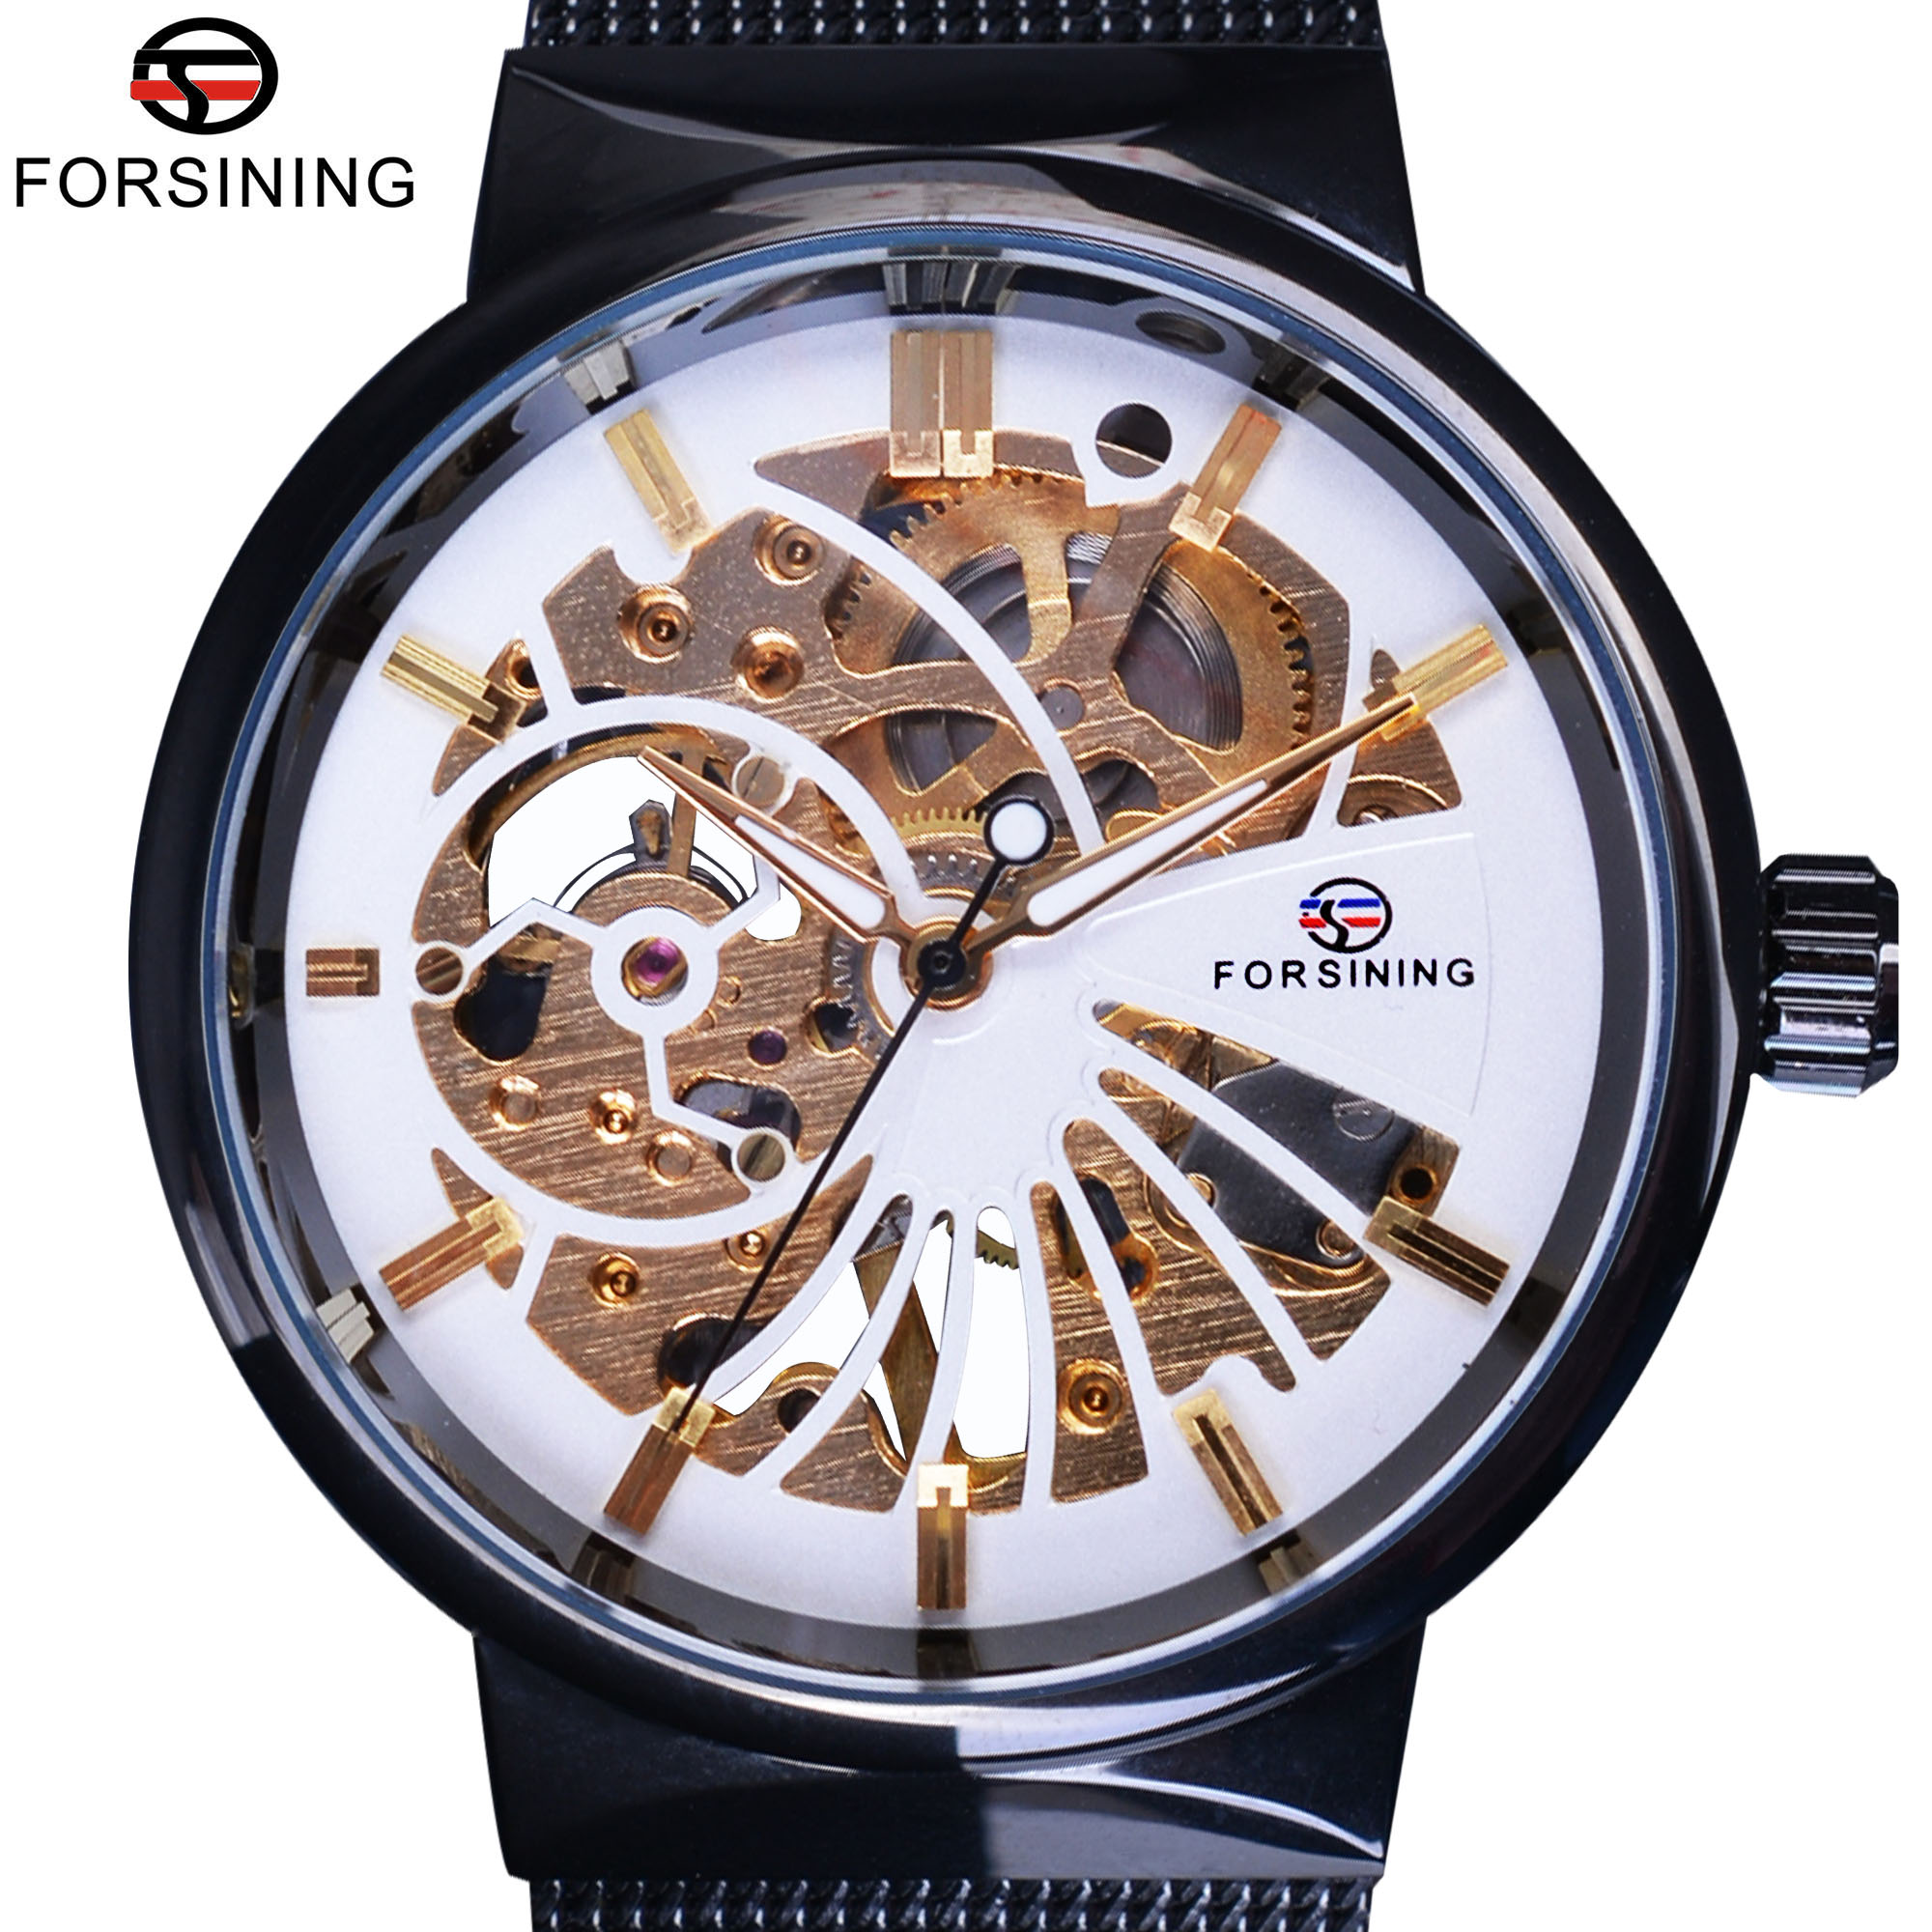 Hearty Forsining Fashion Dress Watch Men Auto Mechanical Watches White Dial Ultra Thin Mesh Strap Minimalist Wristwatch Montre Homme Men's Watches Watches